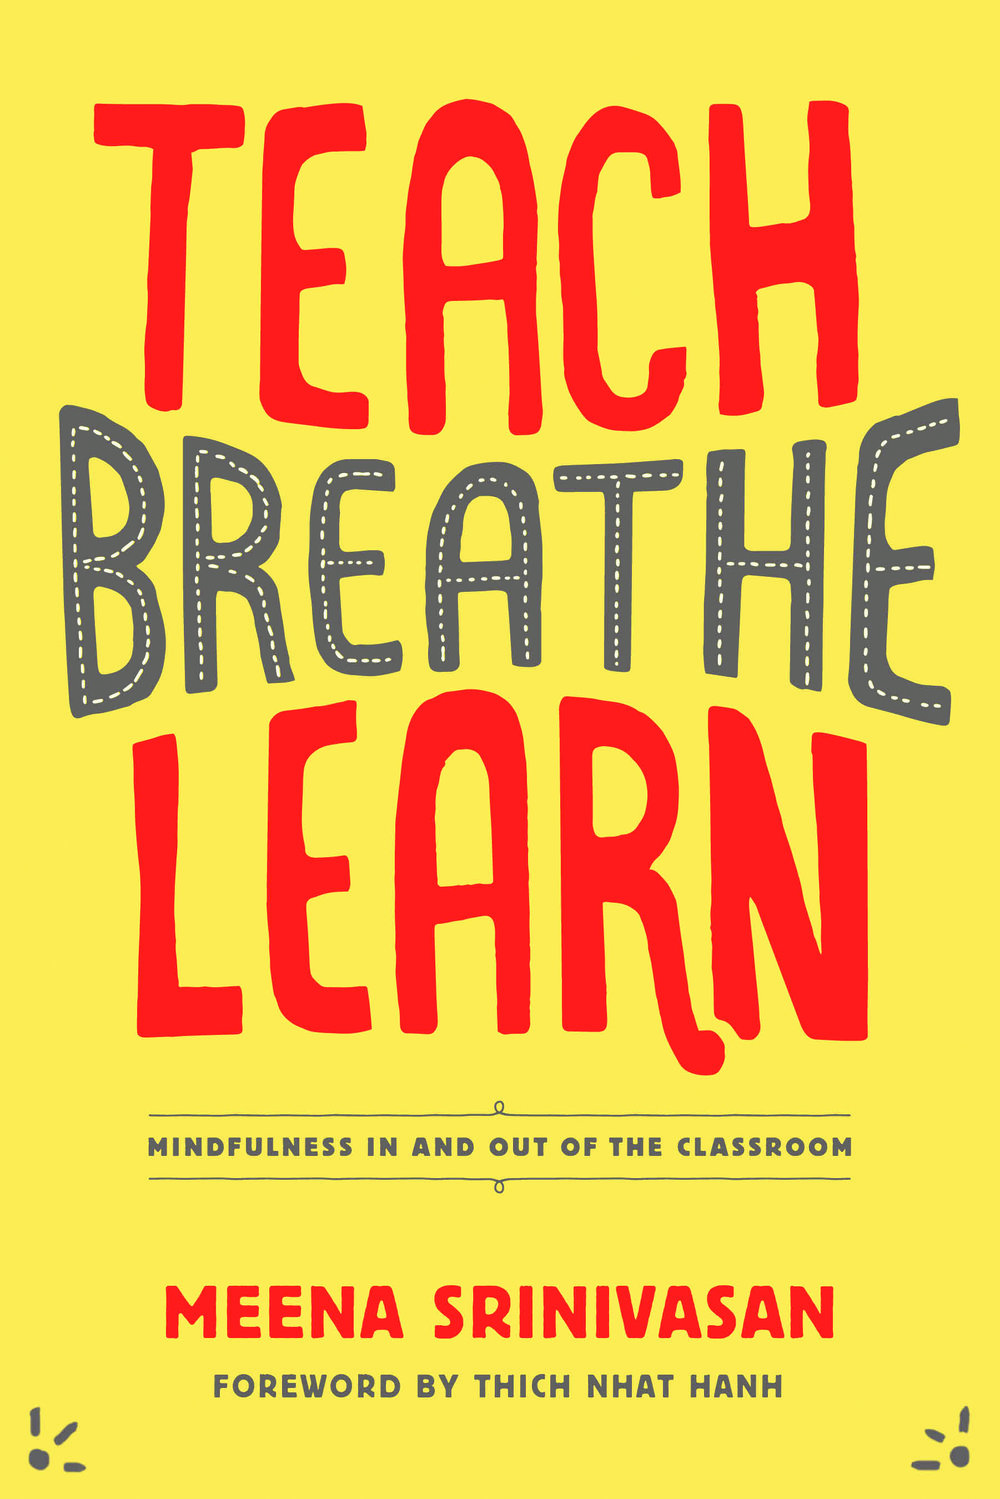 """- """"Meena is a precious ambassador of mindfulness, concretely showing us how to bring mindfulness to the 'front lines' of the classroom, the staffroom, and all throughout our day. The wisdom in this book is grounded in Meena's personal experience of applying mindfulness and compassion to respond rather than react to situations, in order to nurture what is best in us and in our students and skillfully take care of difficult moments."""" - Thich Nhat Hanh, Nobel Peace Prize Nominee""""Mindfulness offers a way for us to tap into the inner resilience, focus and wellbeing that are already inside us. Teach, Breathe, Learn is a key that unlocks this inner potential. This book makes mindfulness accessible for teachers everywhere and is a great resource for sharing mindfulness with young people. It is a helpful tool for parents and educators of all backgrounds. As an accomplished international educator and dedicated mindfulness practitioner, Meena Srinivasan brings these two worlds together in this compelling book, showing how to embed mindfulness into teaching and life."""" - Congressman Tim Ryan"""